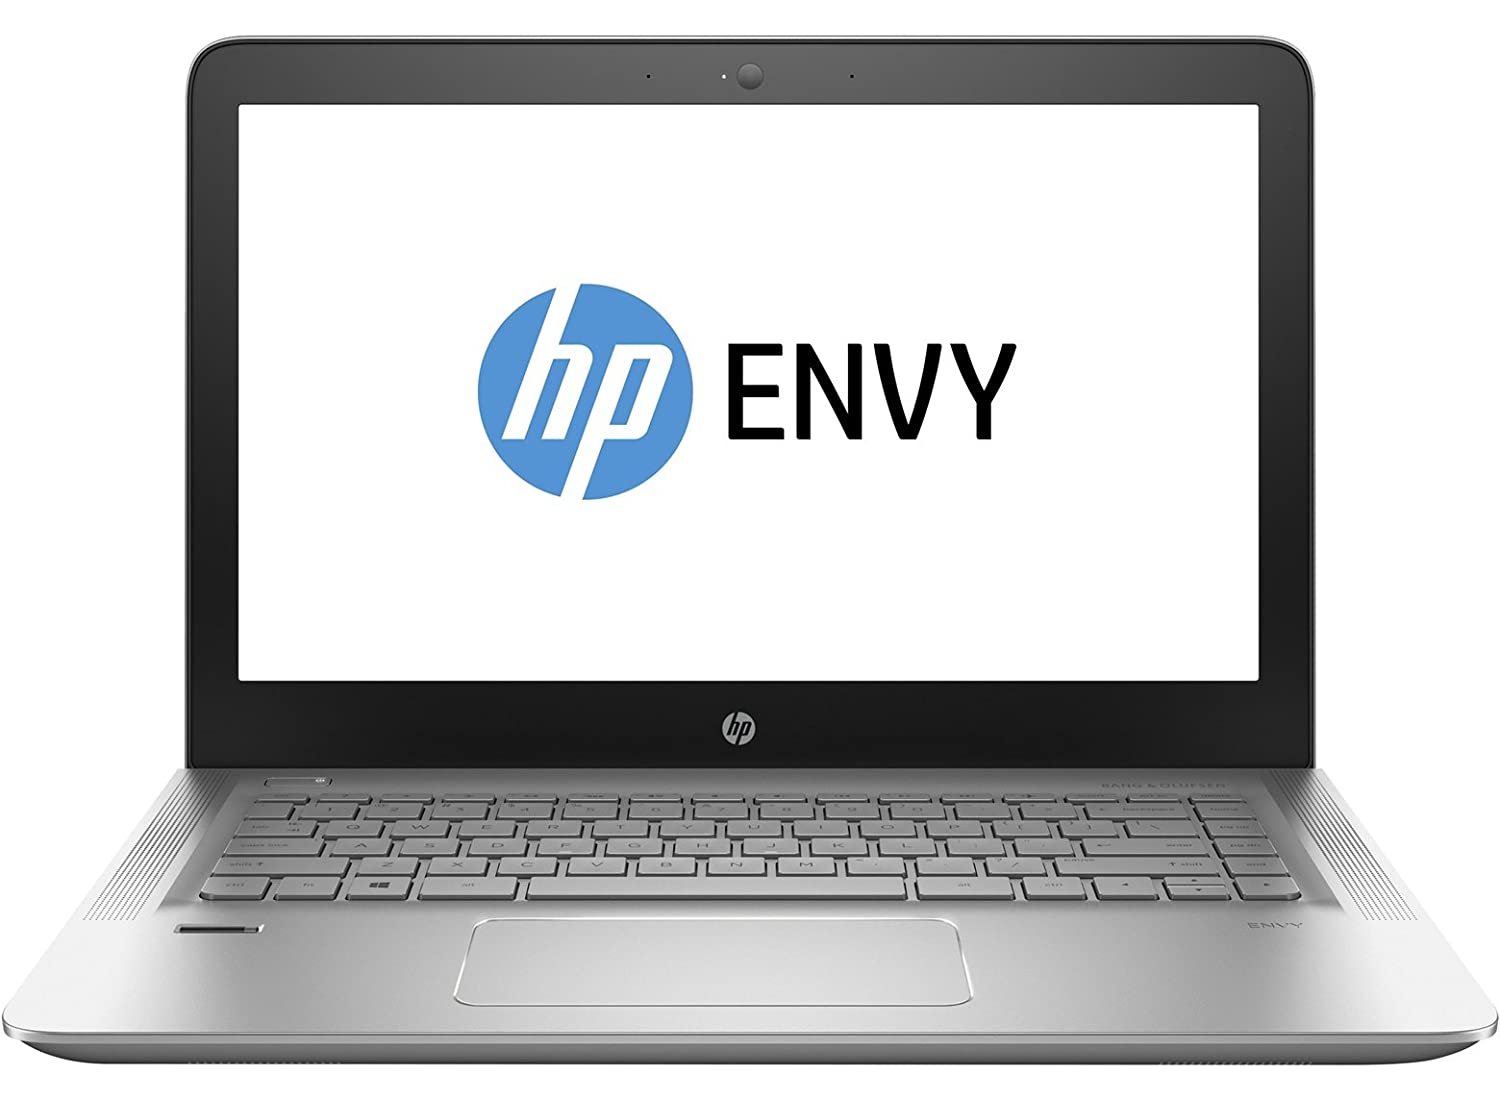 092e02ec1fce5 HP ENVY N5S60UA#ABA Laptop (Windows 10, Intel Core i7-6500U, 13